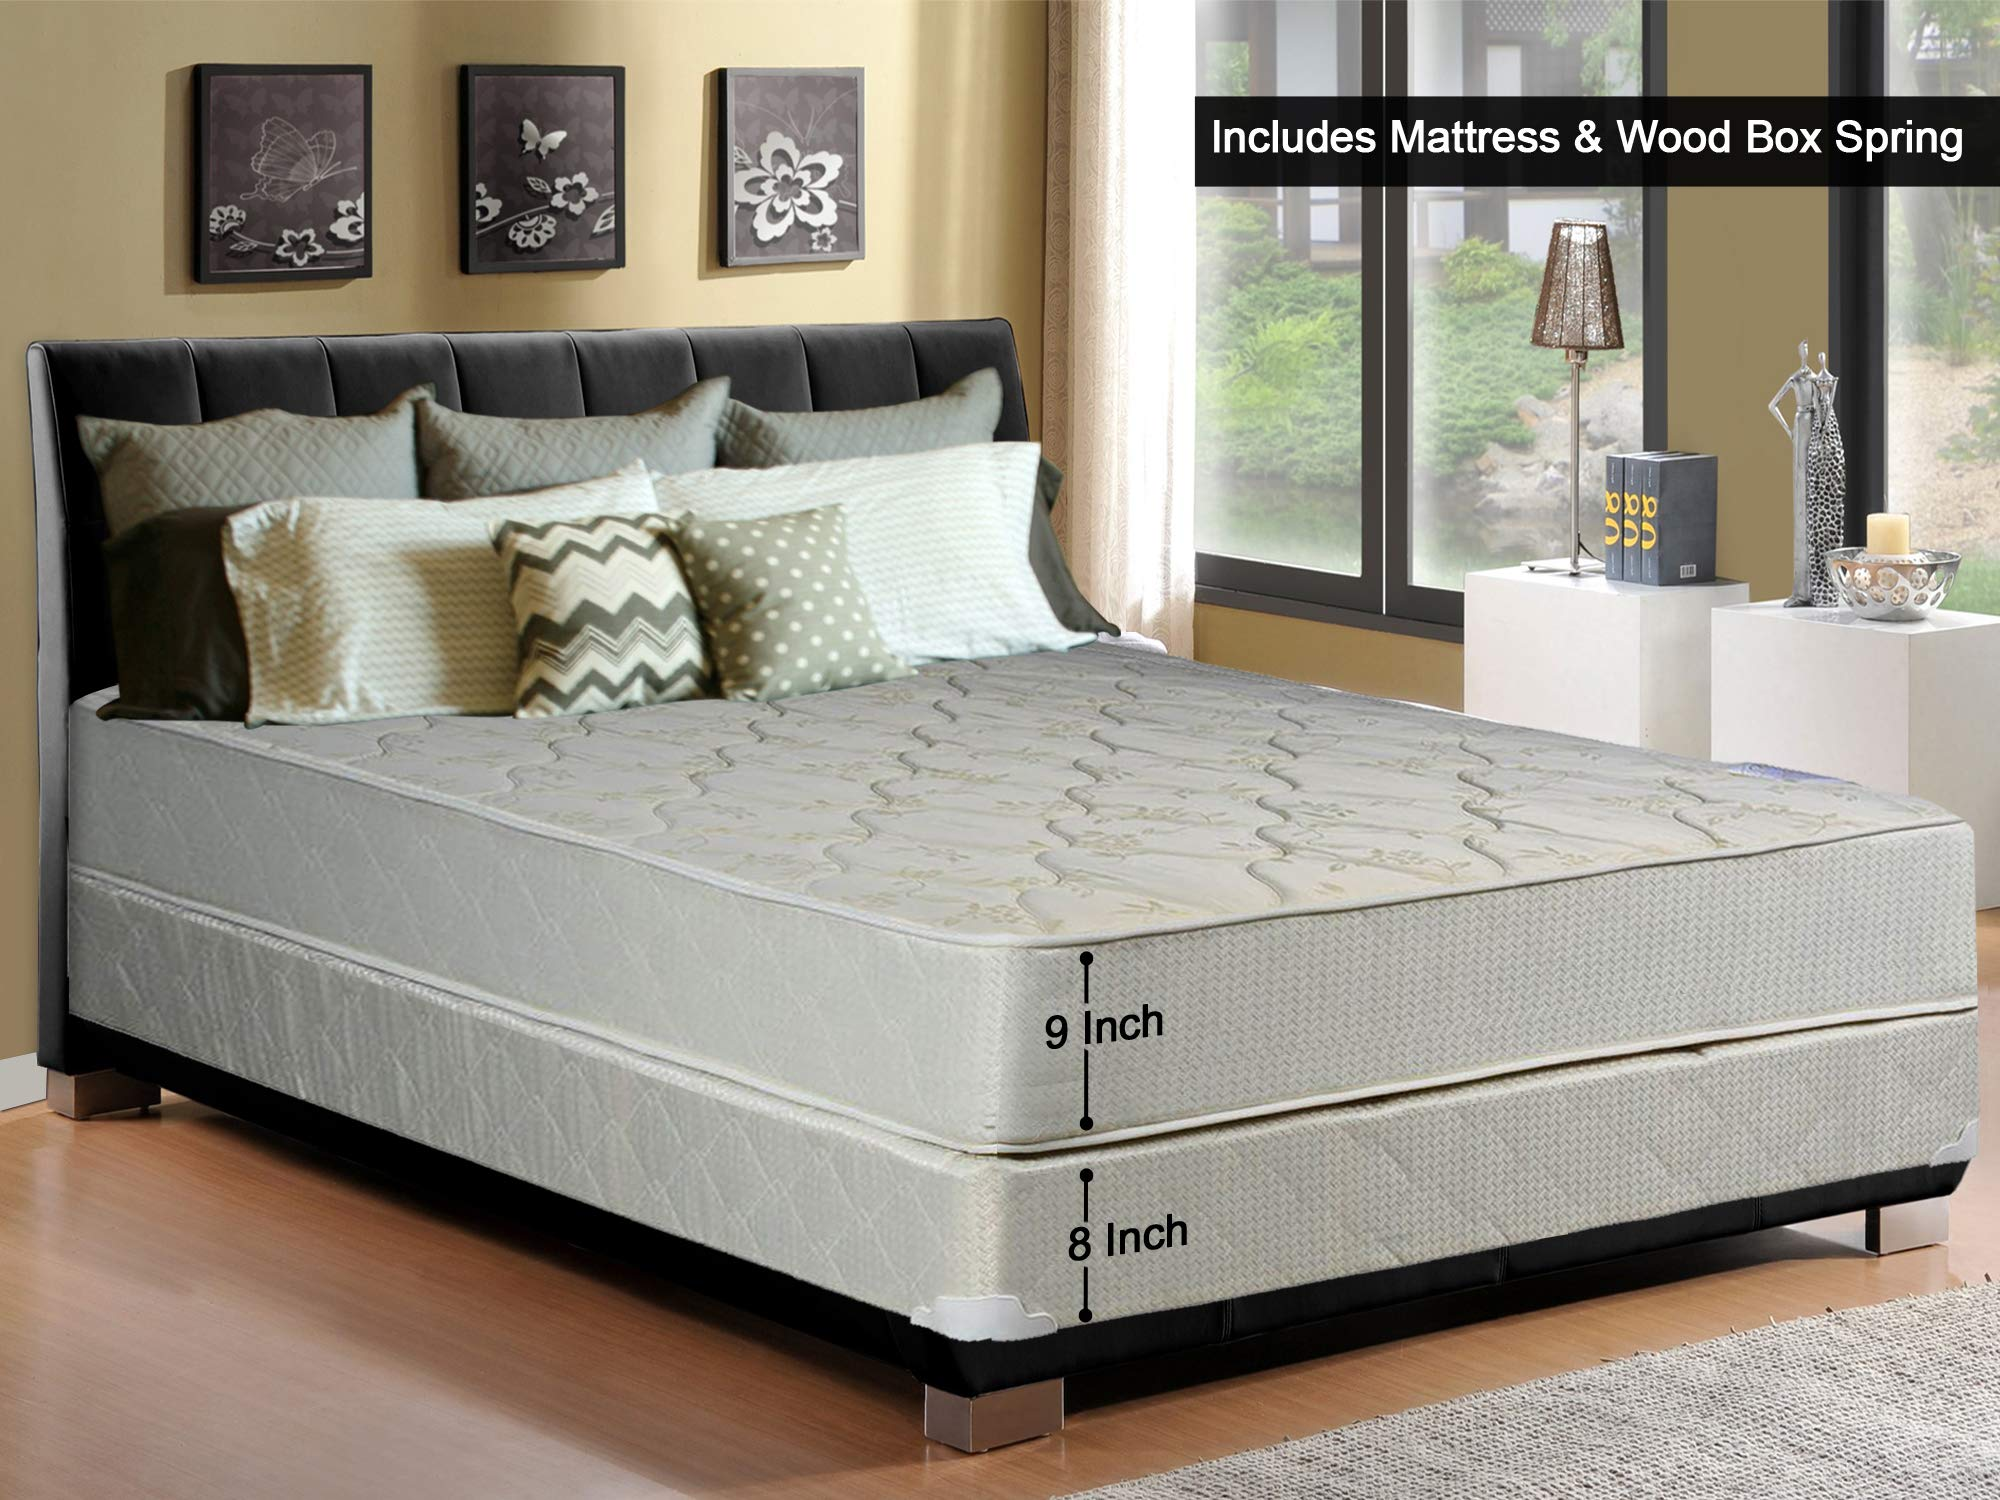 Continental Sleep, 9-inch Gentle Firm Tight top Innerspring Mattress and 8-inch Wood Traditional Box Spring/Foundation Set, Good for The Back, No Assembly Required, Full Size